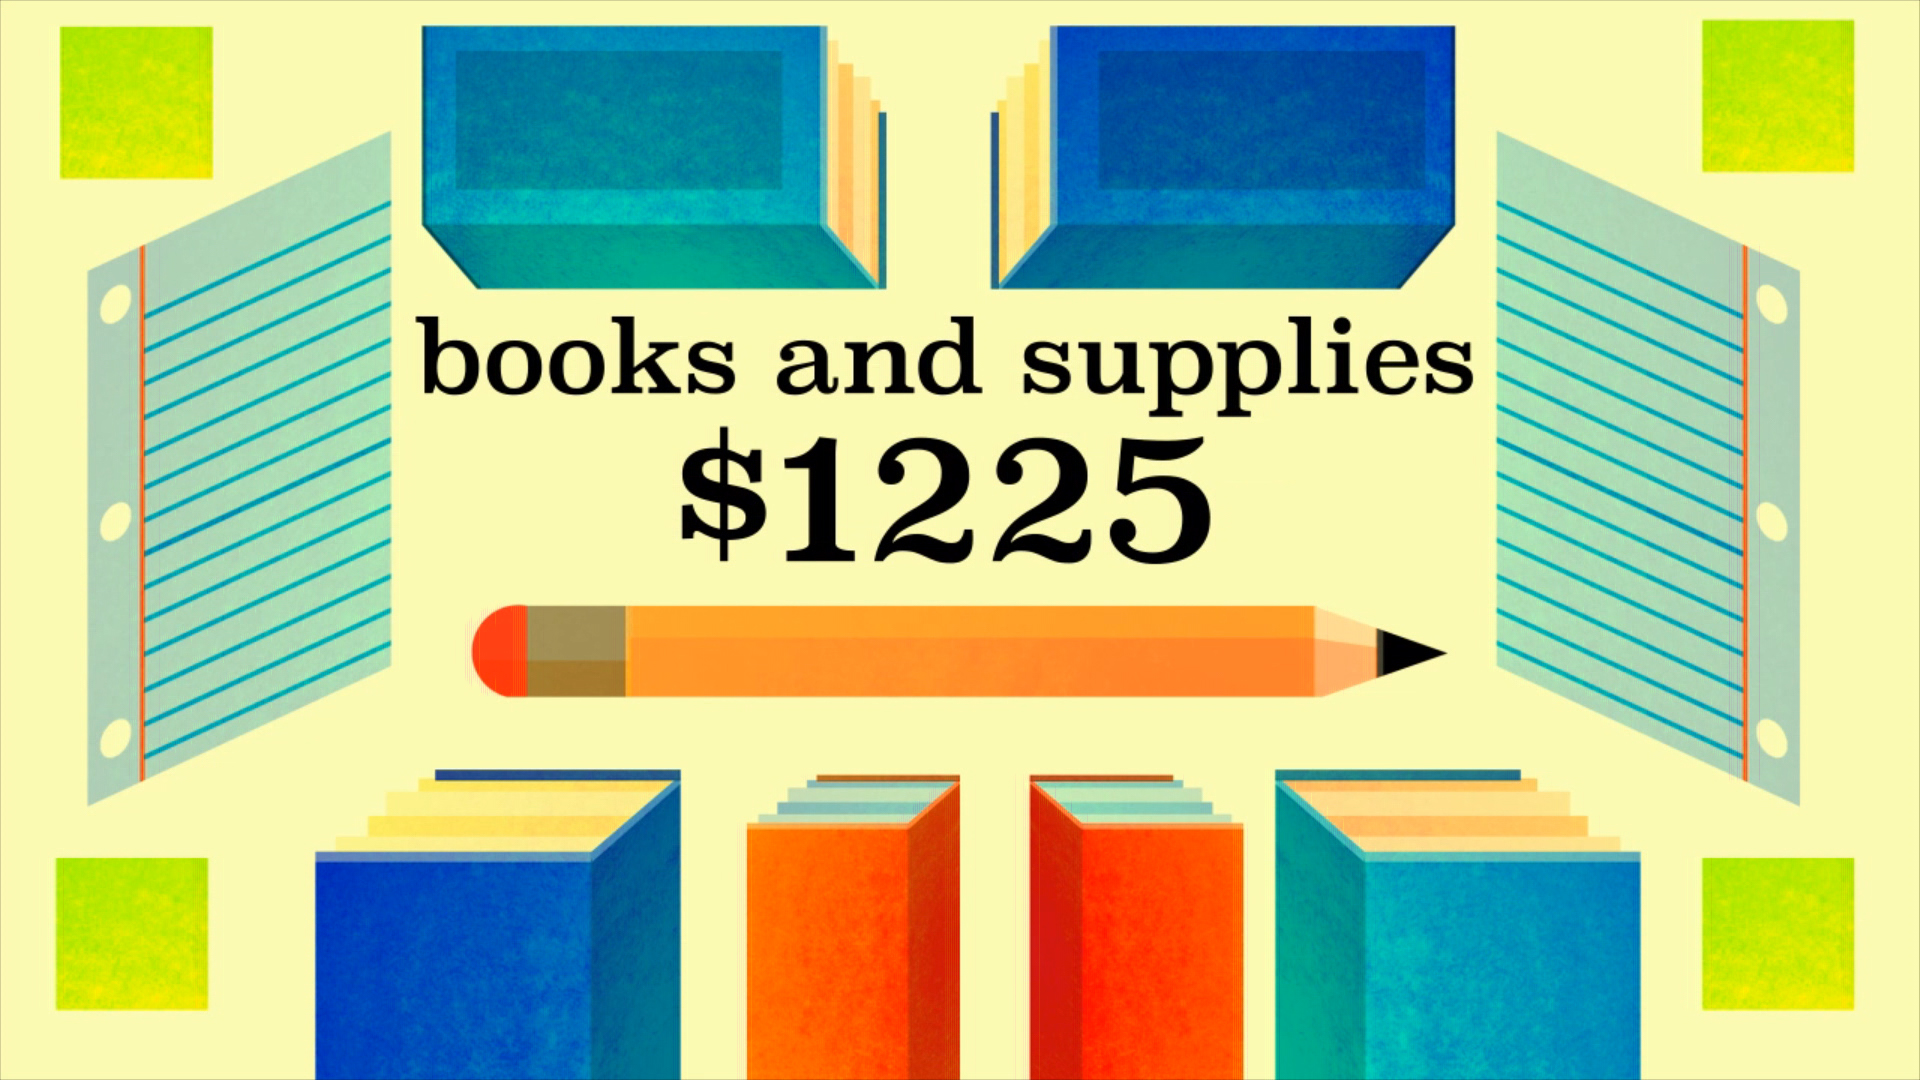 textbook Save up to 80% on etextbook rentals and up to 60% when you buy kindle etextbooks study smarter, carry less, and read your etextbooks anywhere on the free kindle app, available on ipad, android tablet, mac, or pc.